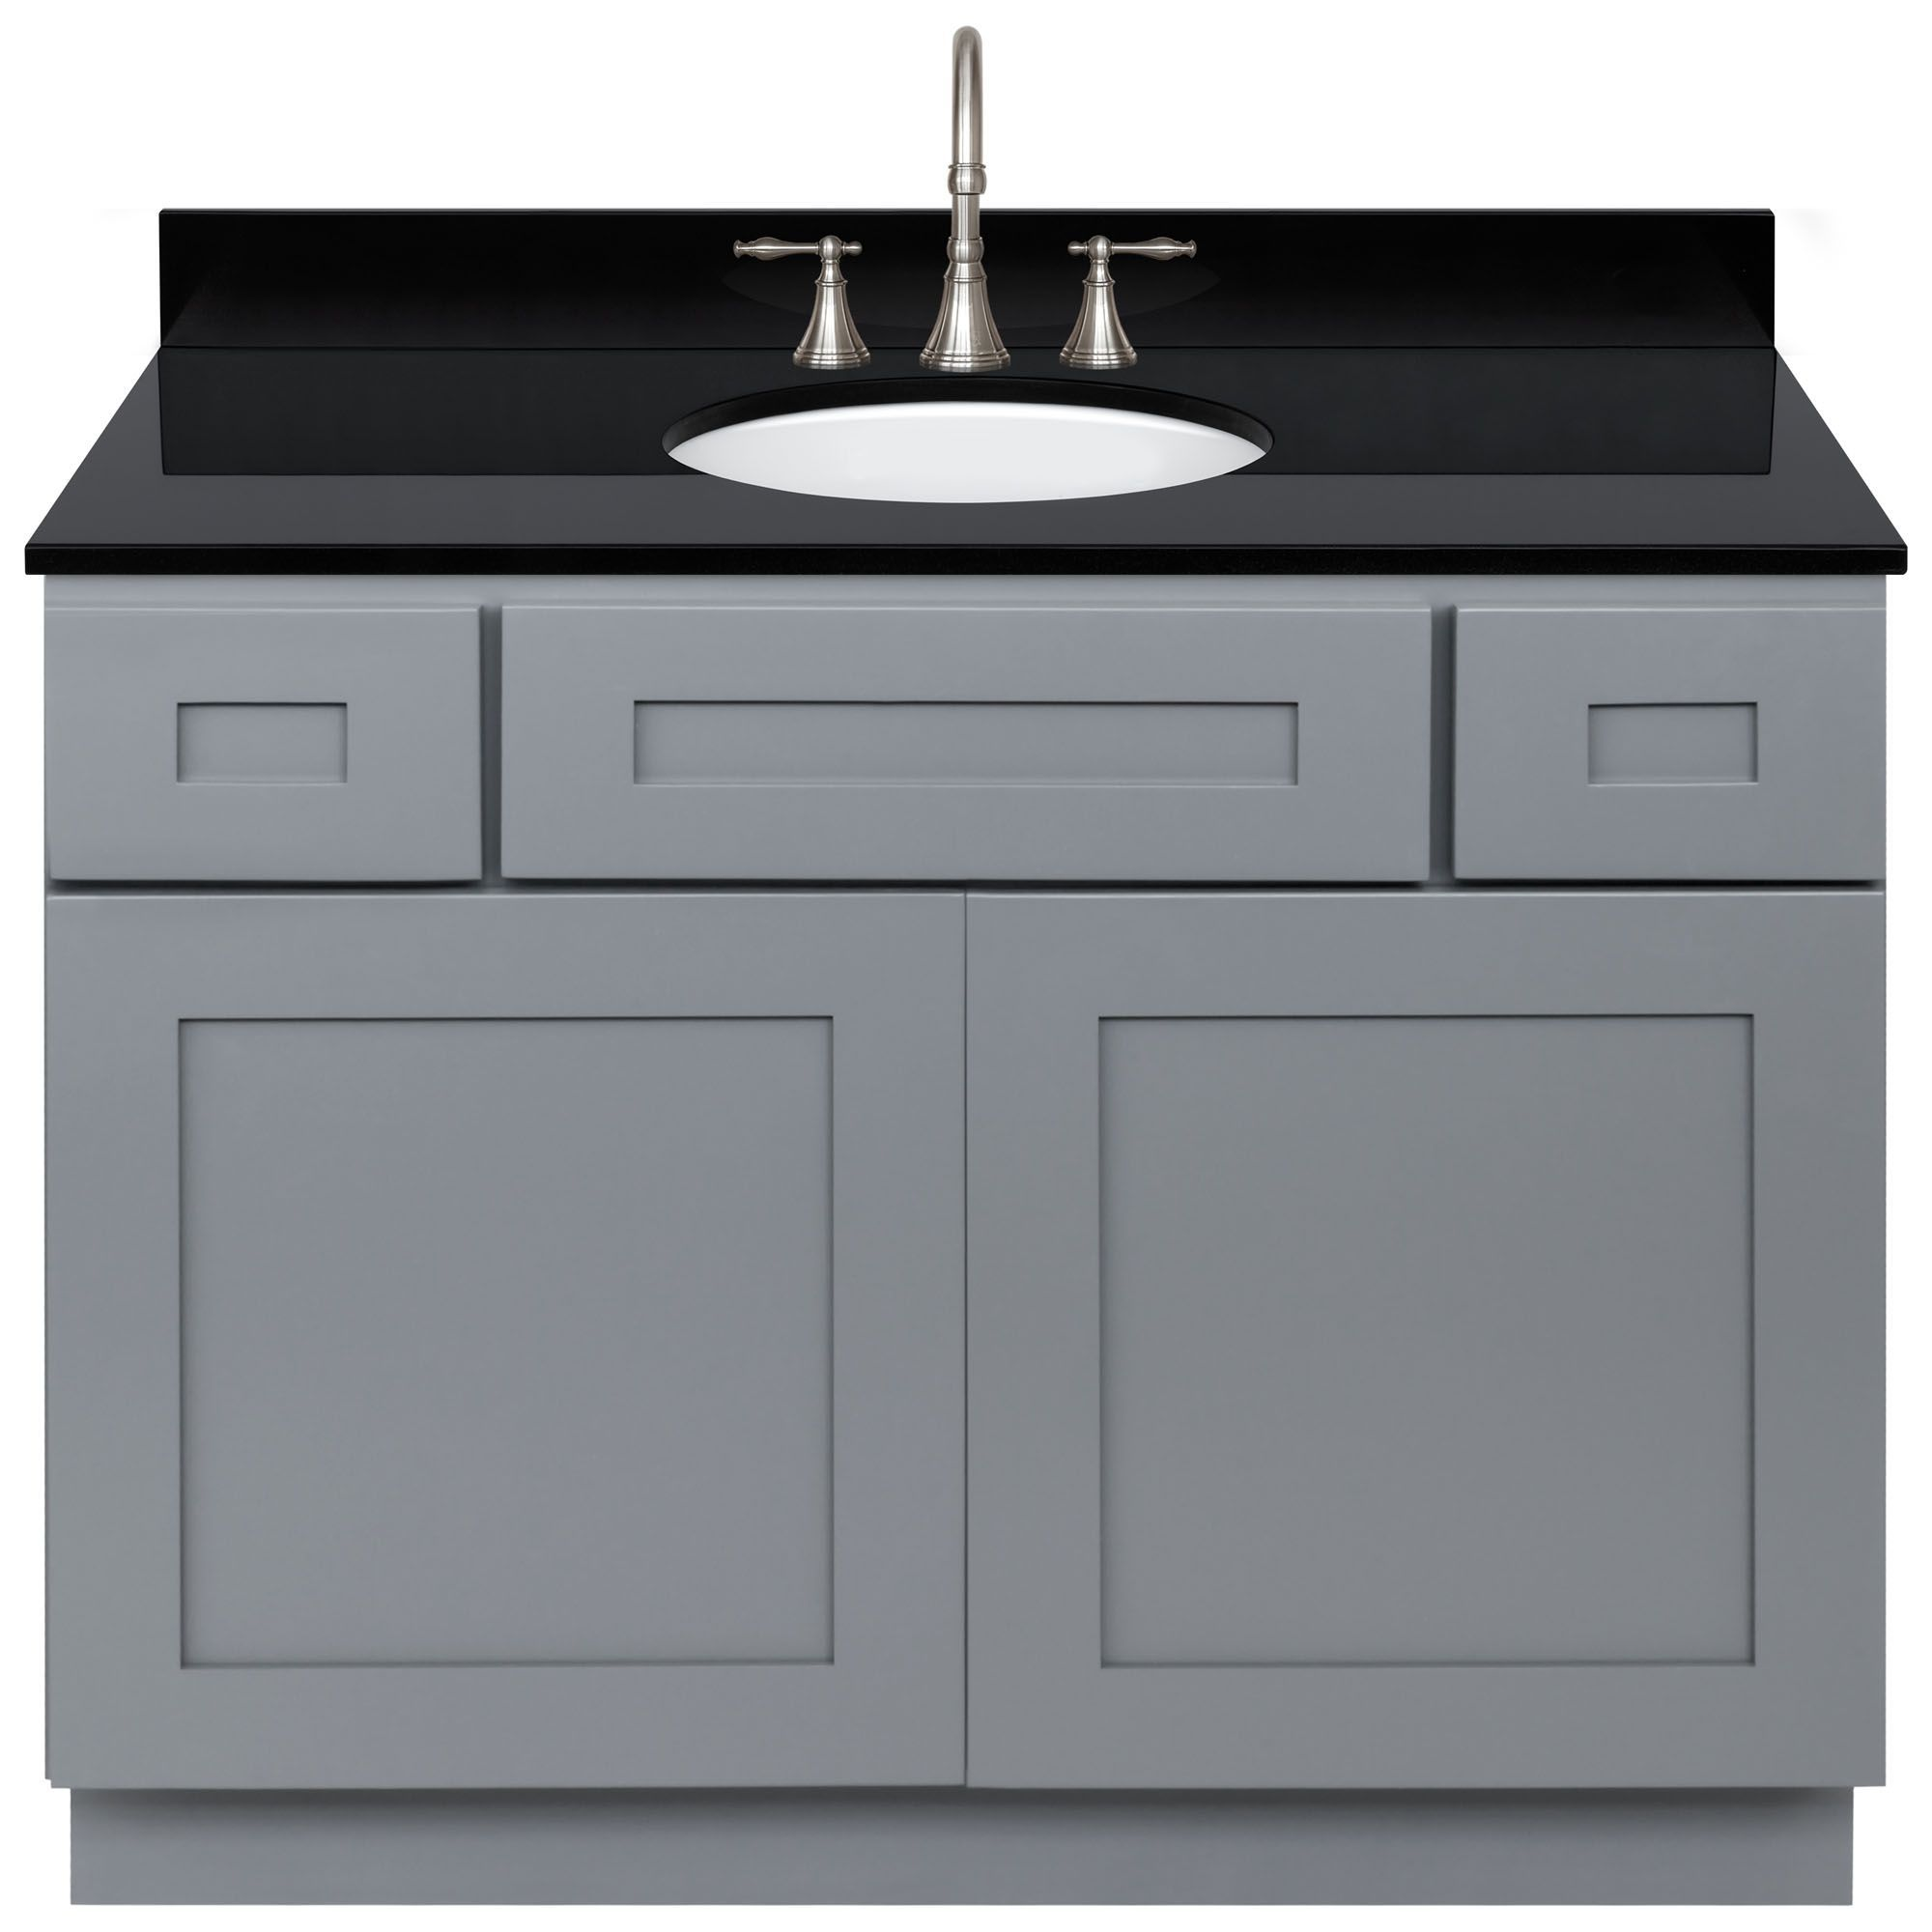 Lesscare Colonial Gray 43w Vanity With Absolute Black Granite Top And Faucet Vanities With Tops Bathroom Vanities Bath